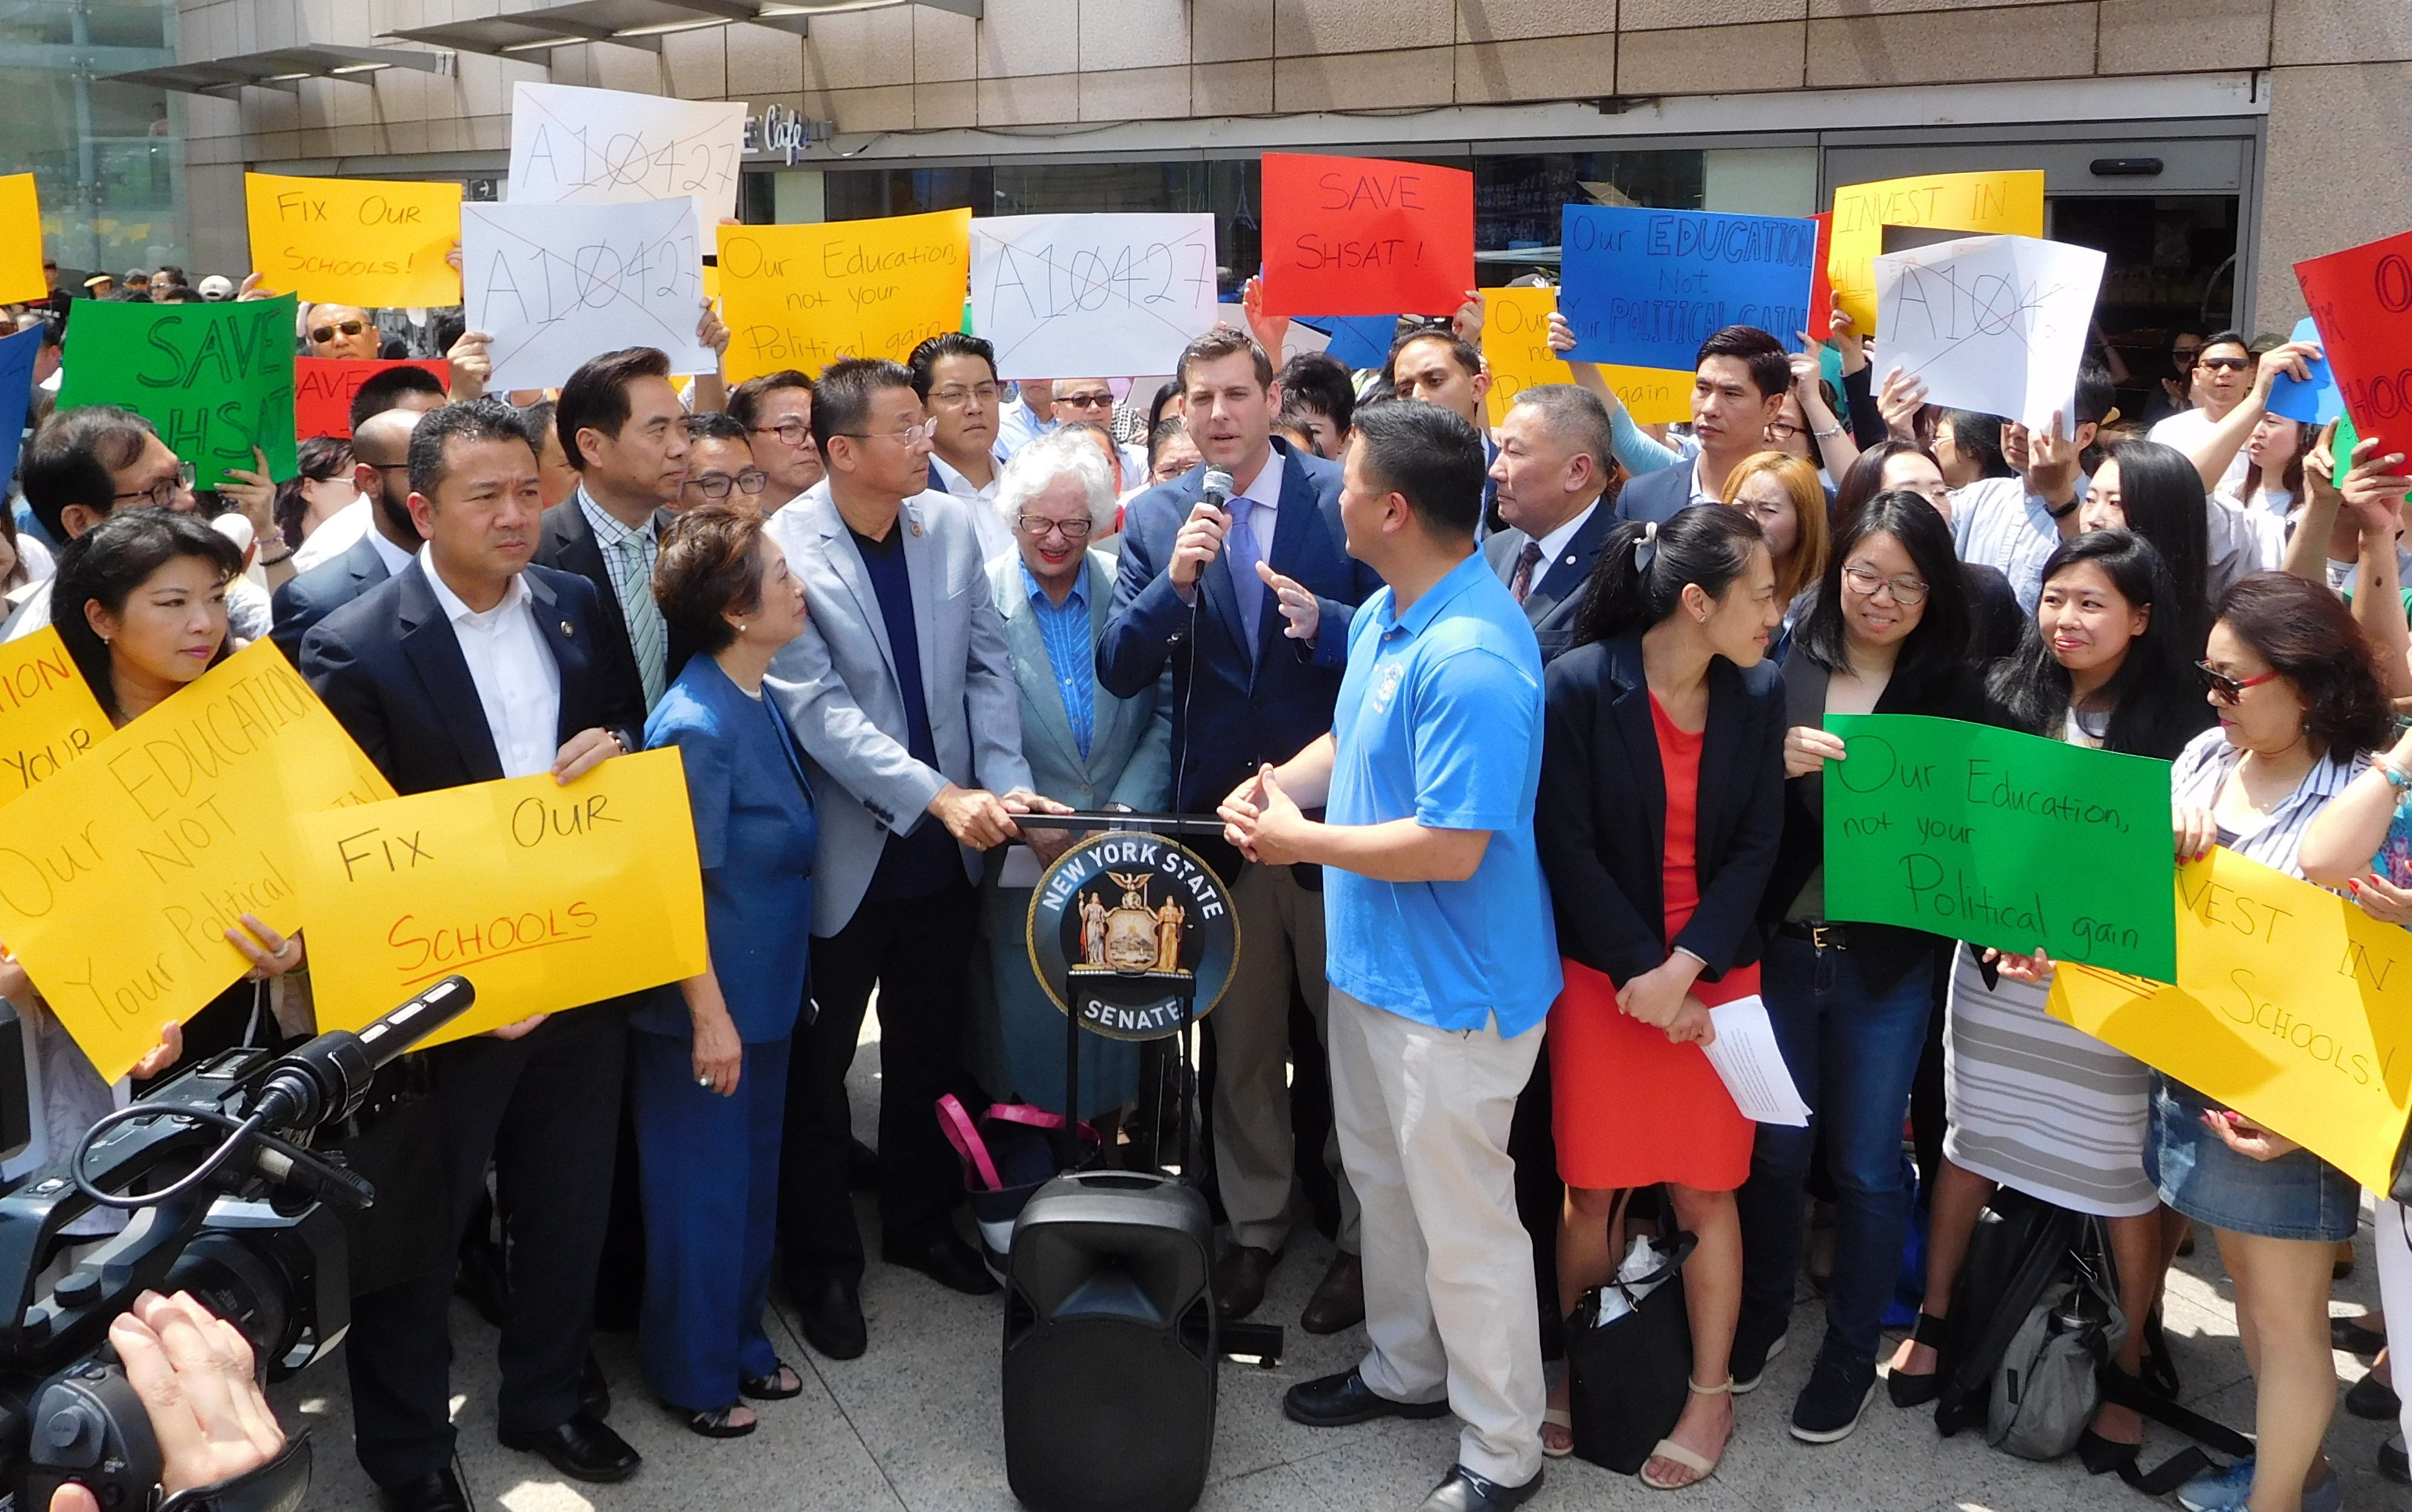 On June 8, 2018, Assemblyman Braunstein attended a rally against the proposed elimination of the Specialized High School Admissions Test.<br />&nbsp;